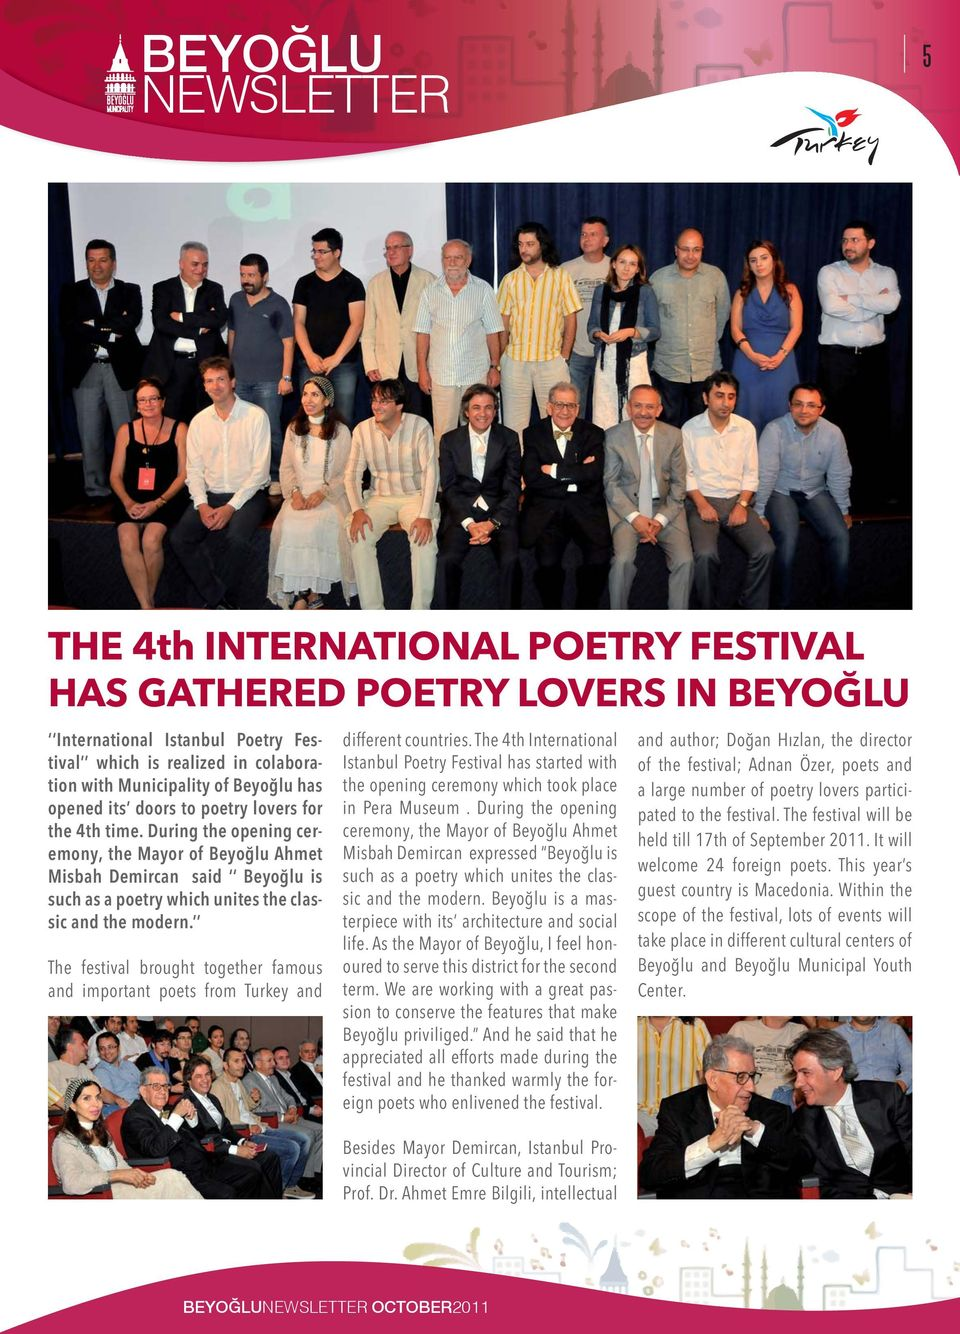 The festival brought together famous and important poets from Turkey and different countries.